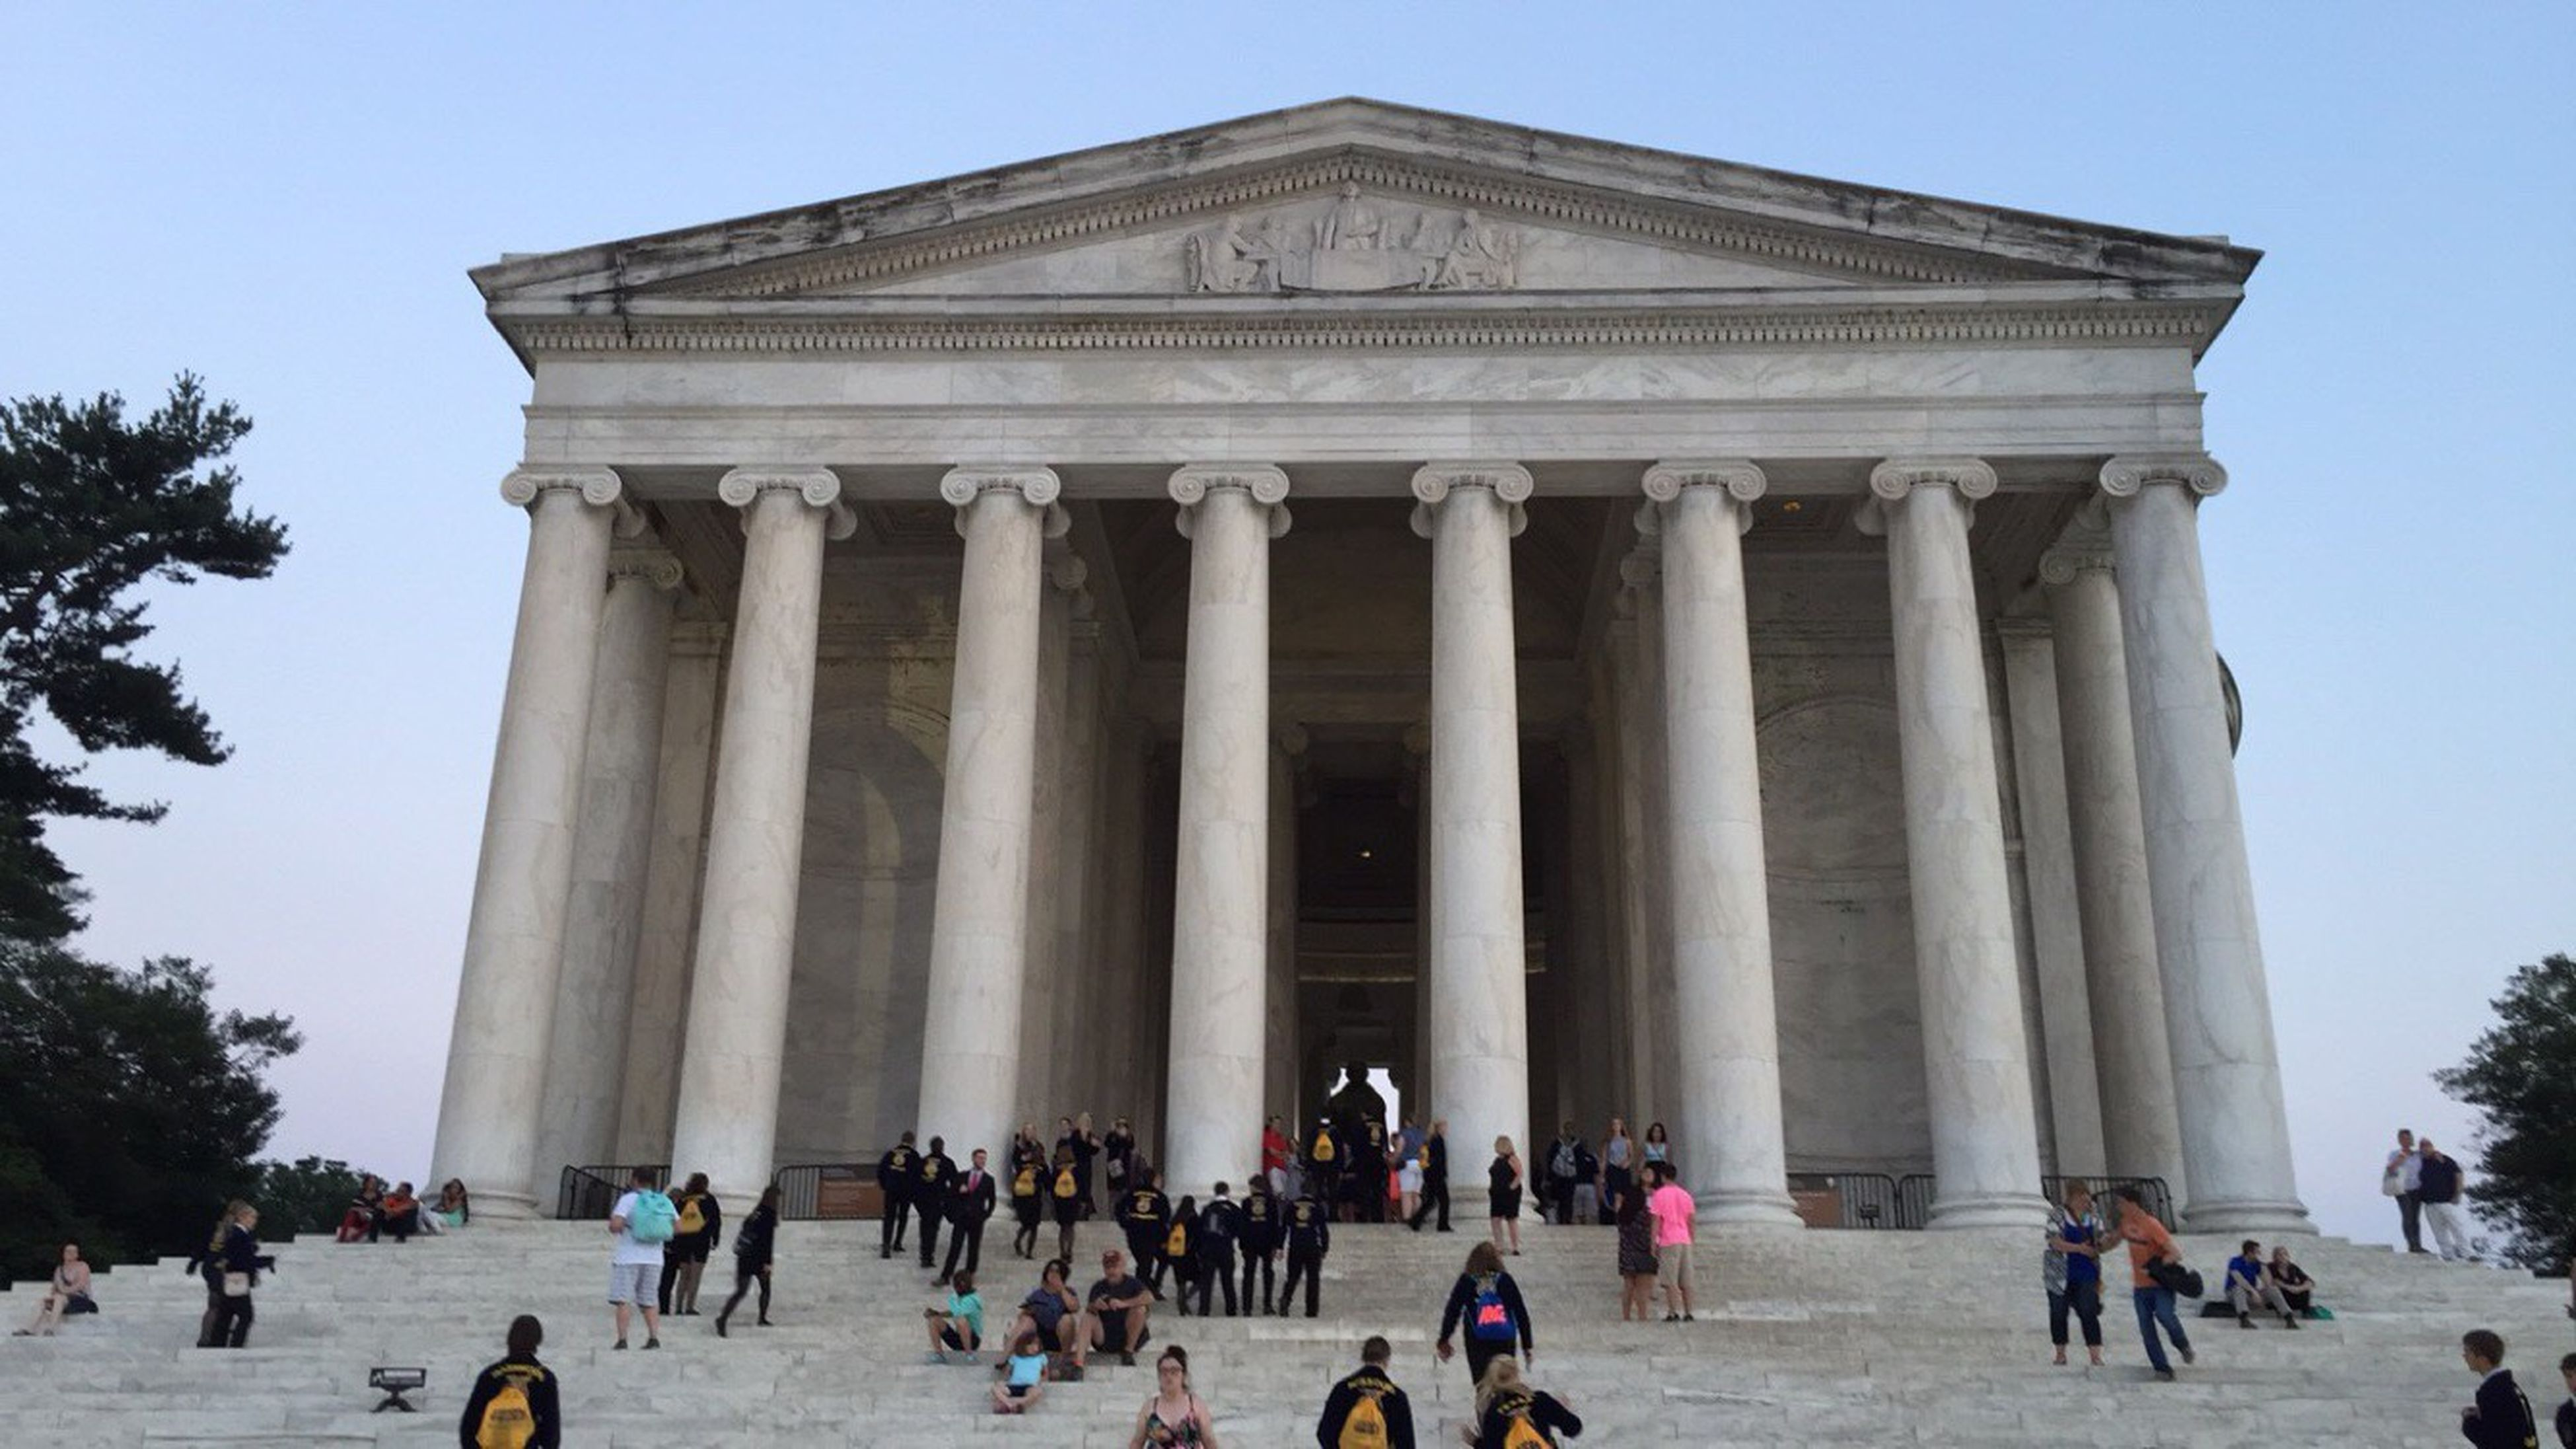 architecture, tourism, large group of people, travel destinations, architectural column, travel, real people, history, built structure, tourist, lifestyles, the past, city, monument, outdoors, women, day, pediment, people, adult